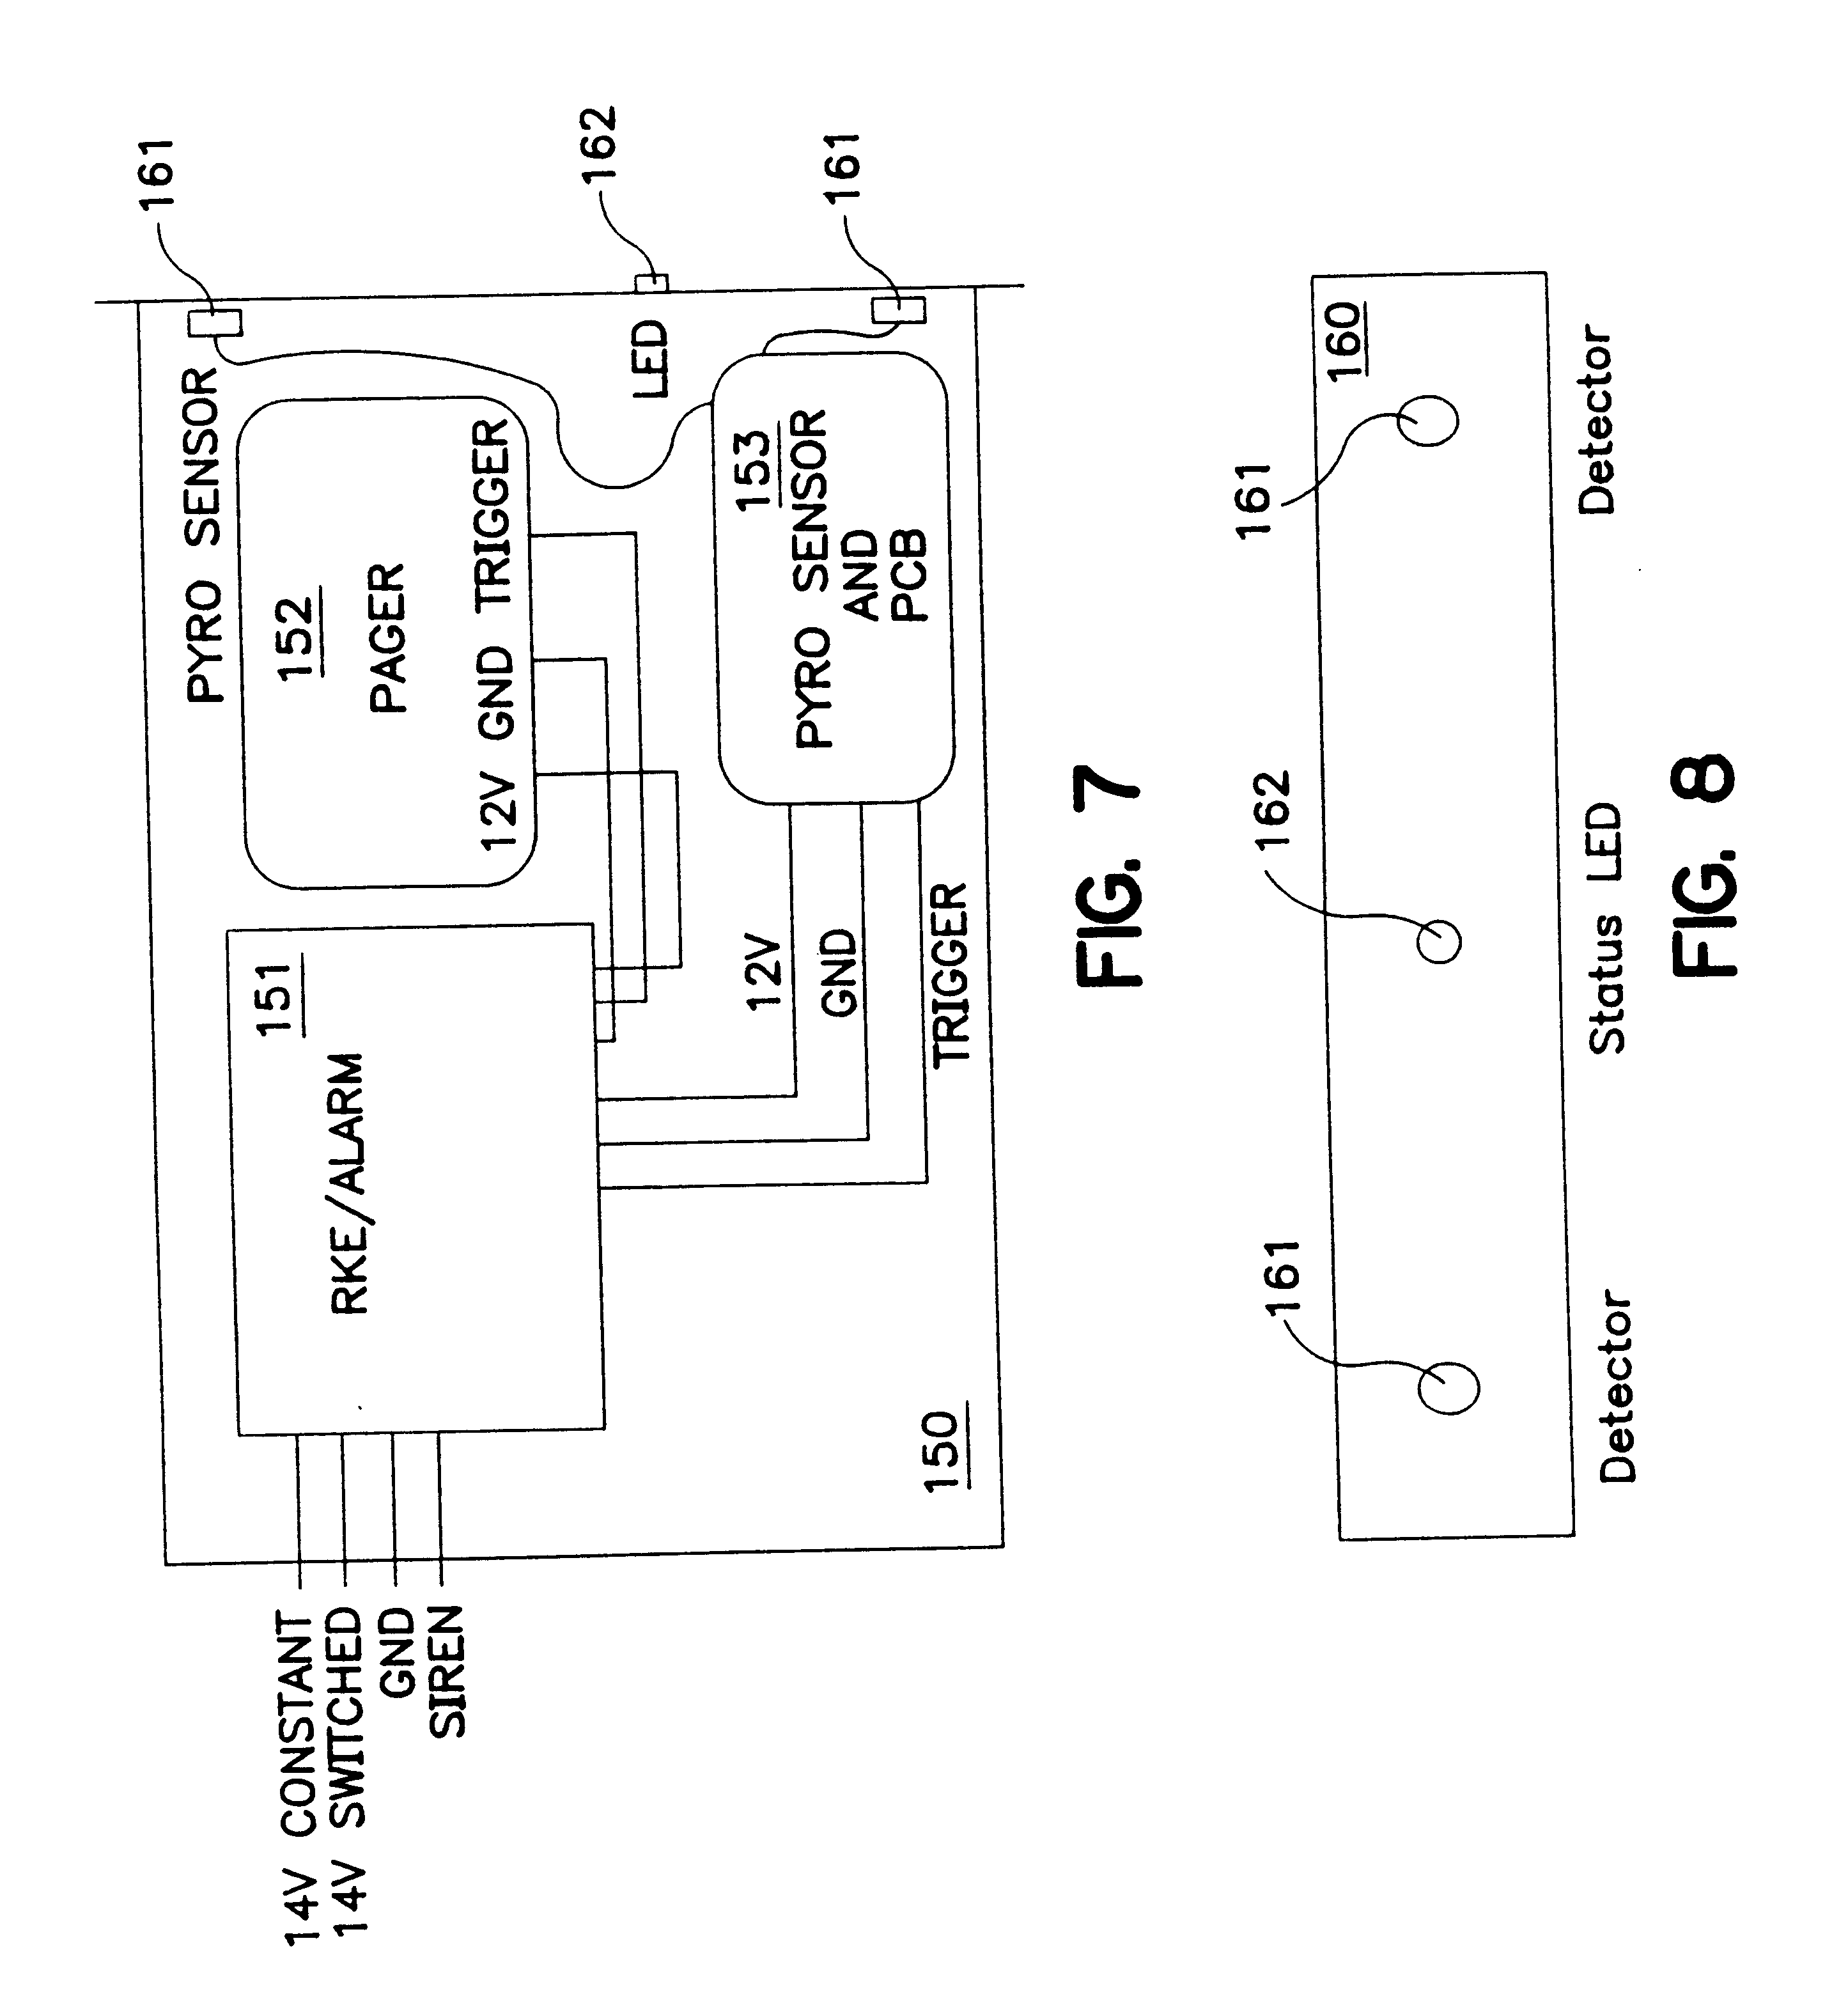 donnelly mirror wiring diagram donnelly mirrors wire 3